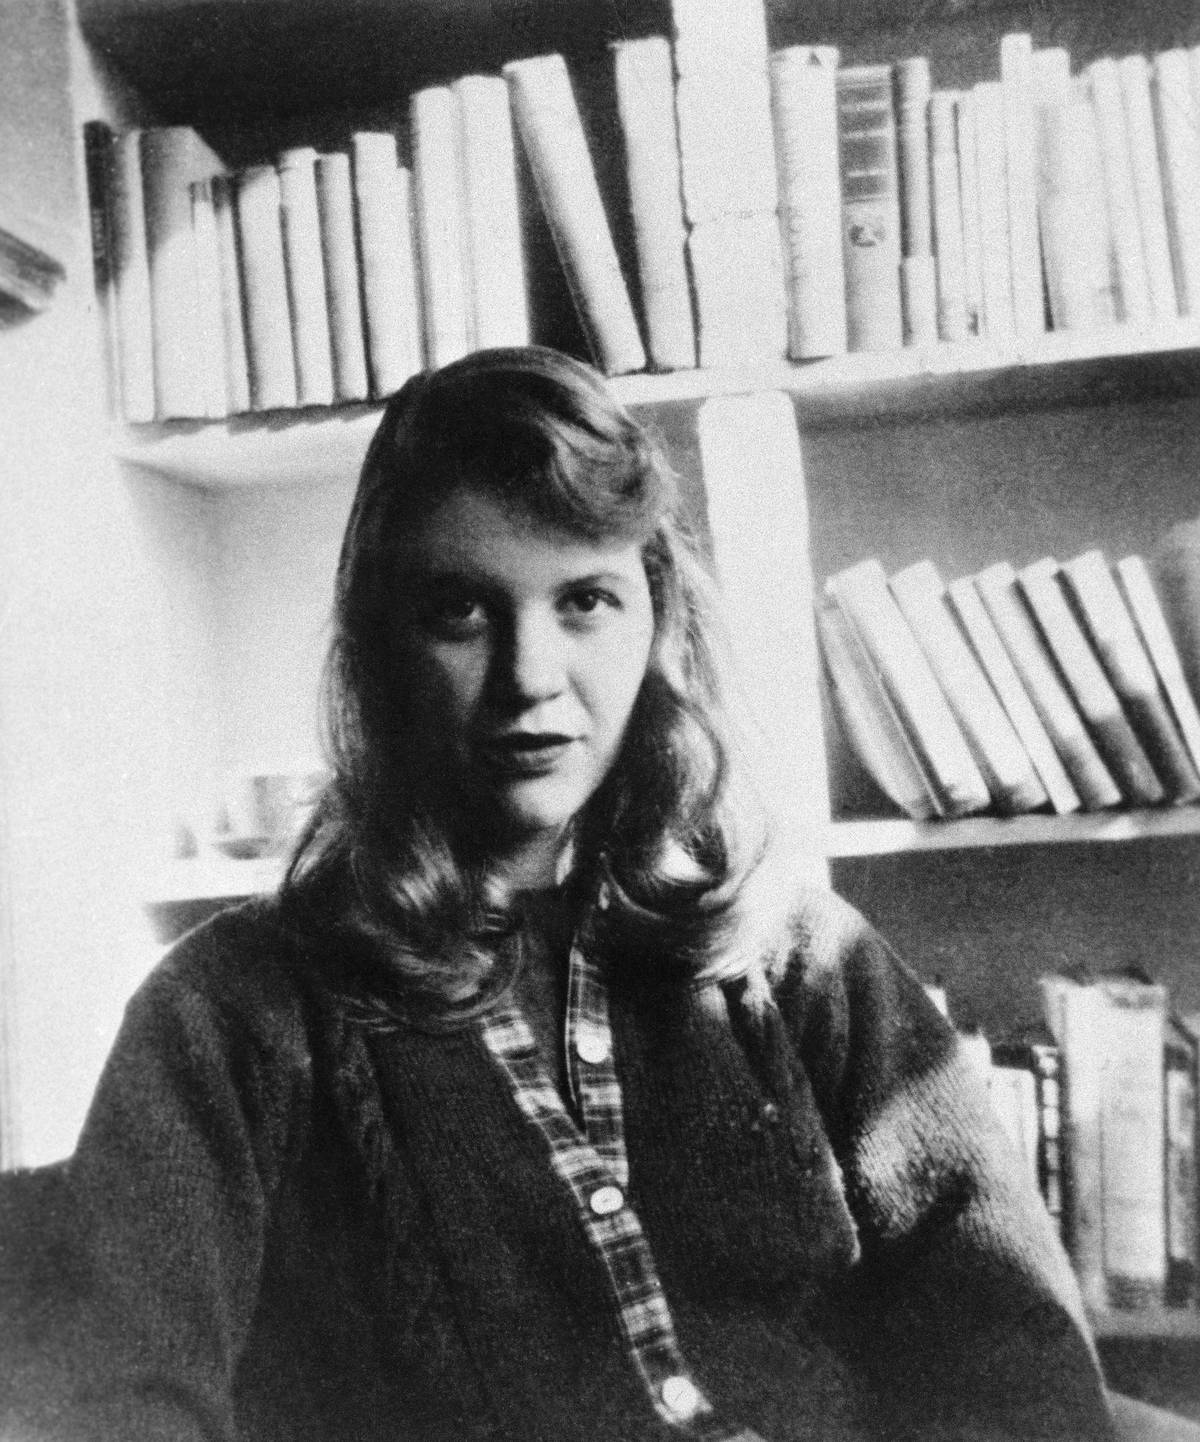 Photo shows author Sylvia Plath seated in front of a bookshelf.